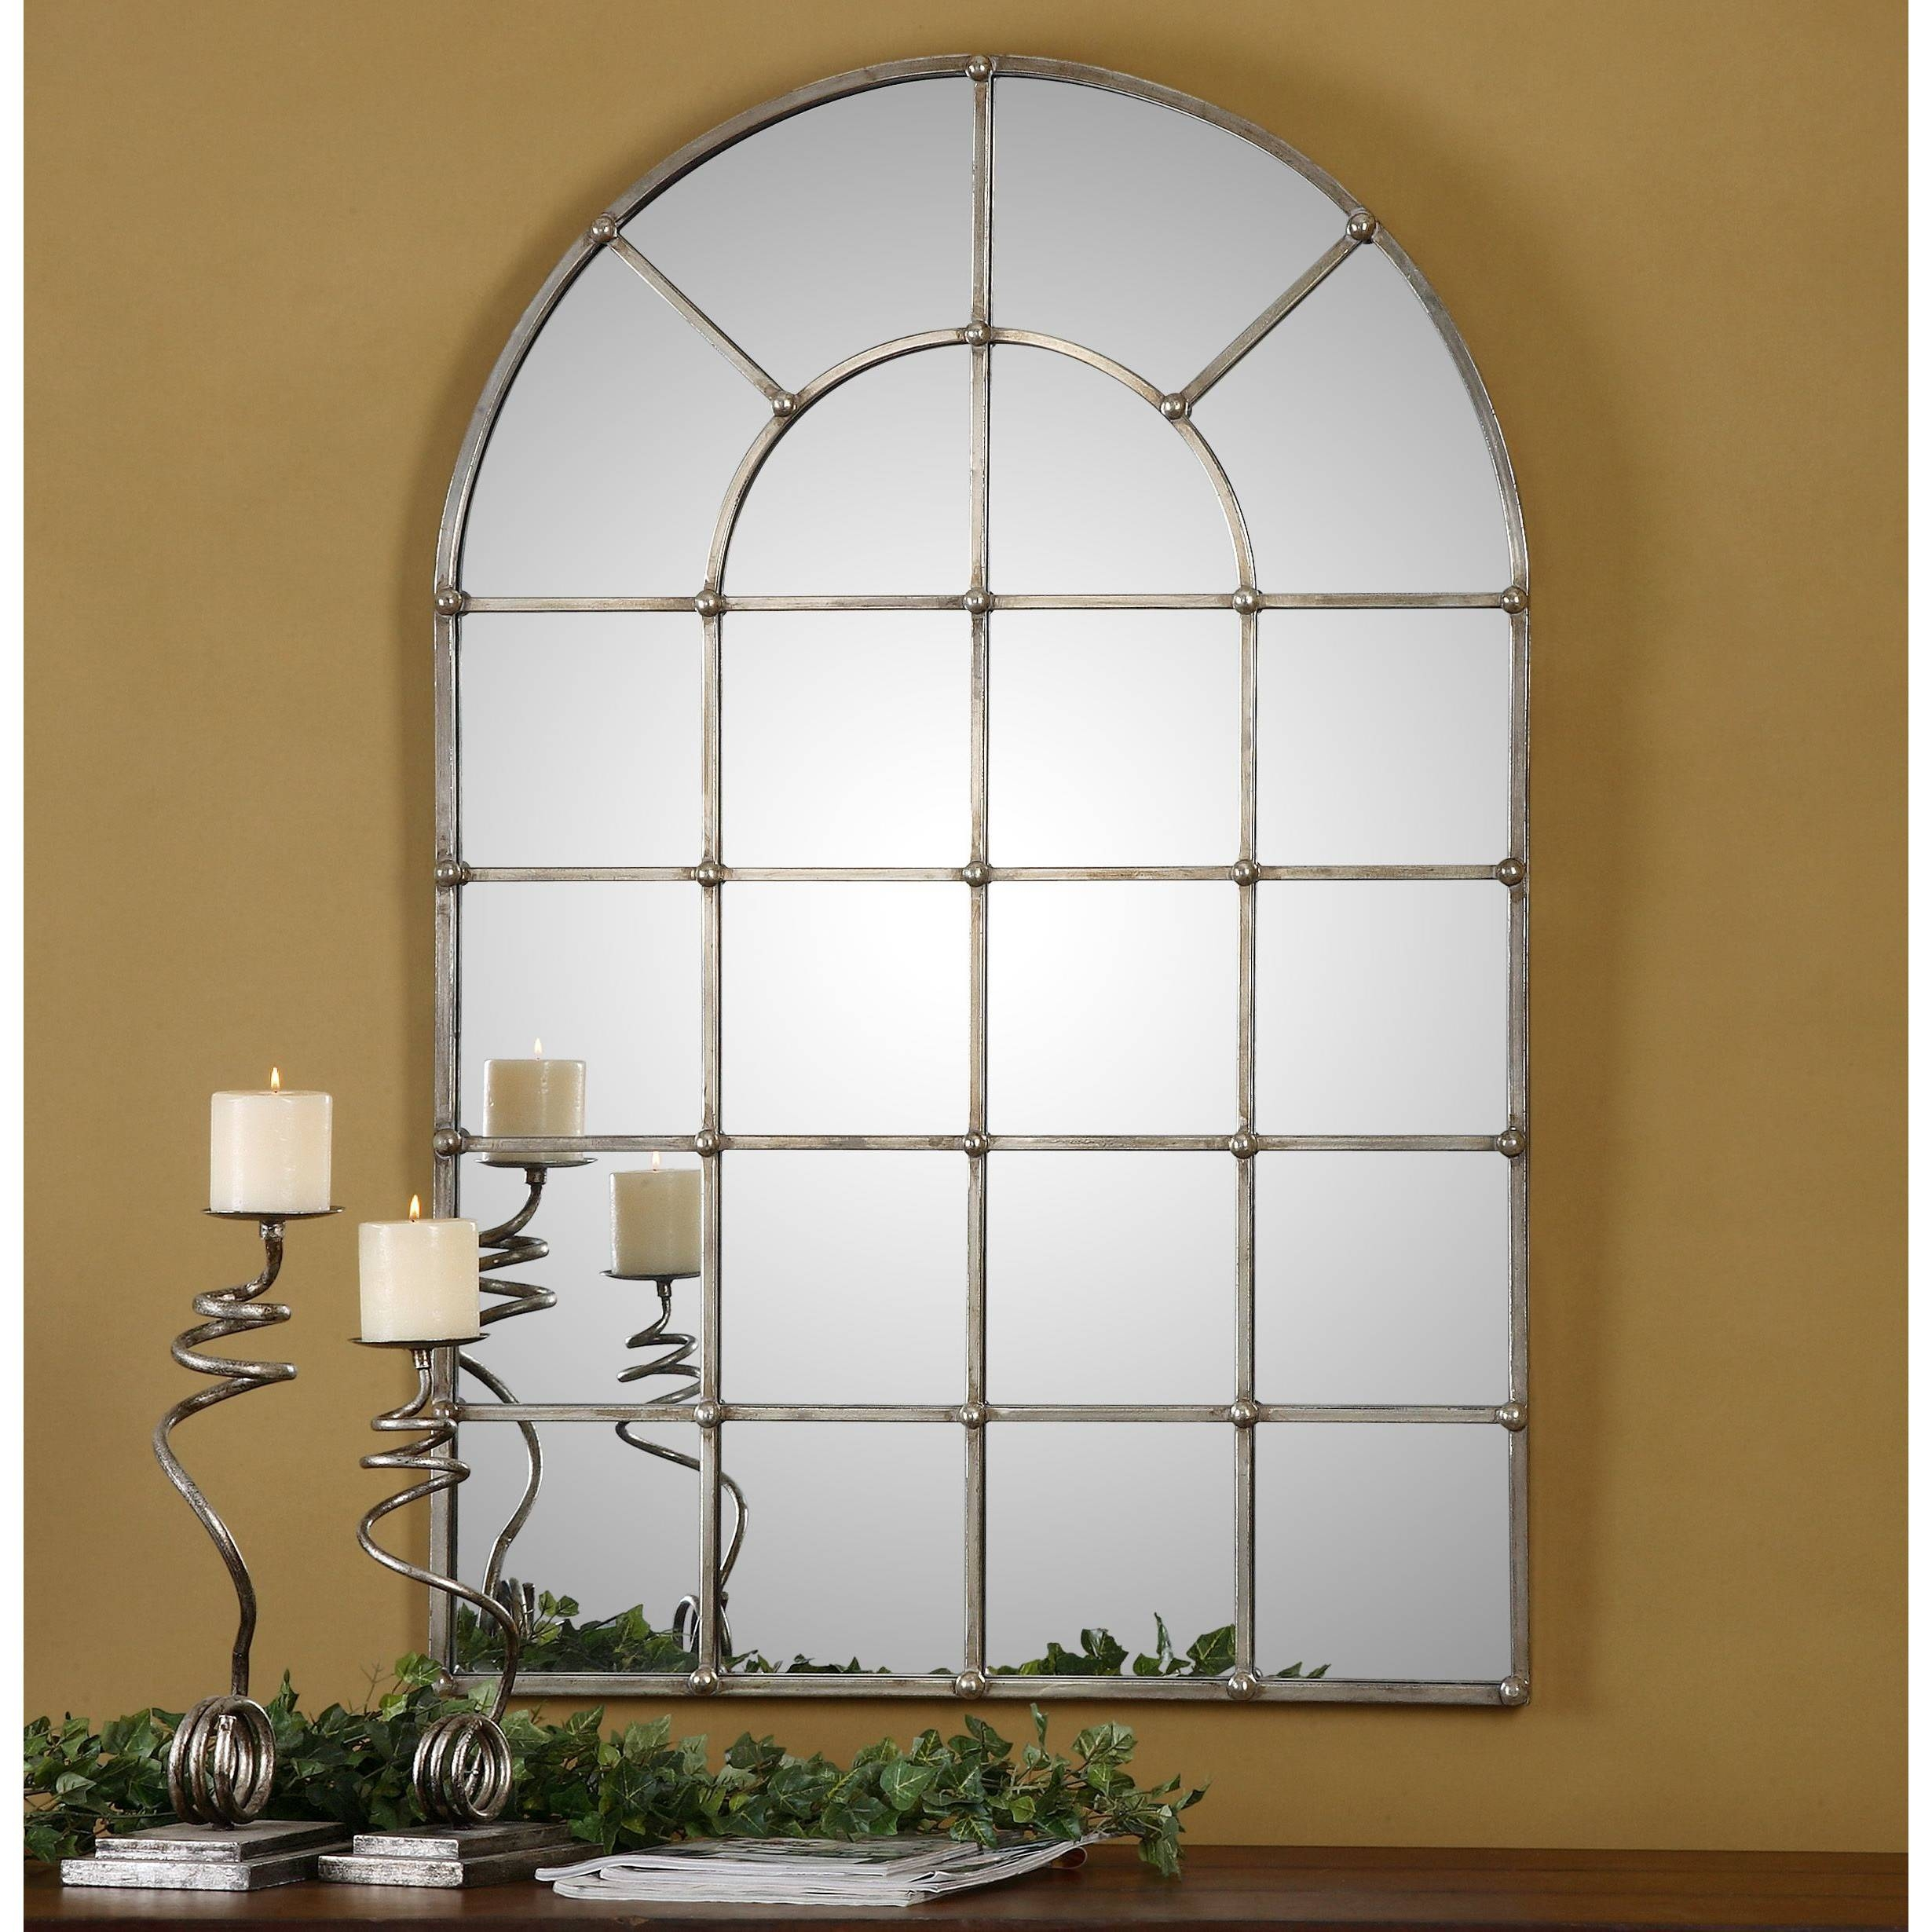 Small Arched Window Pane Mirror | Vanity Decoration intended for Large Arched Window Mirrors (Image 13 of 15)